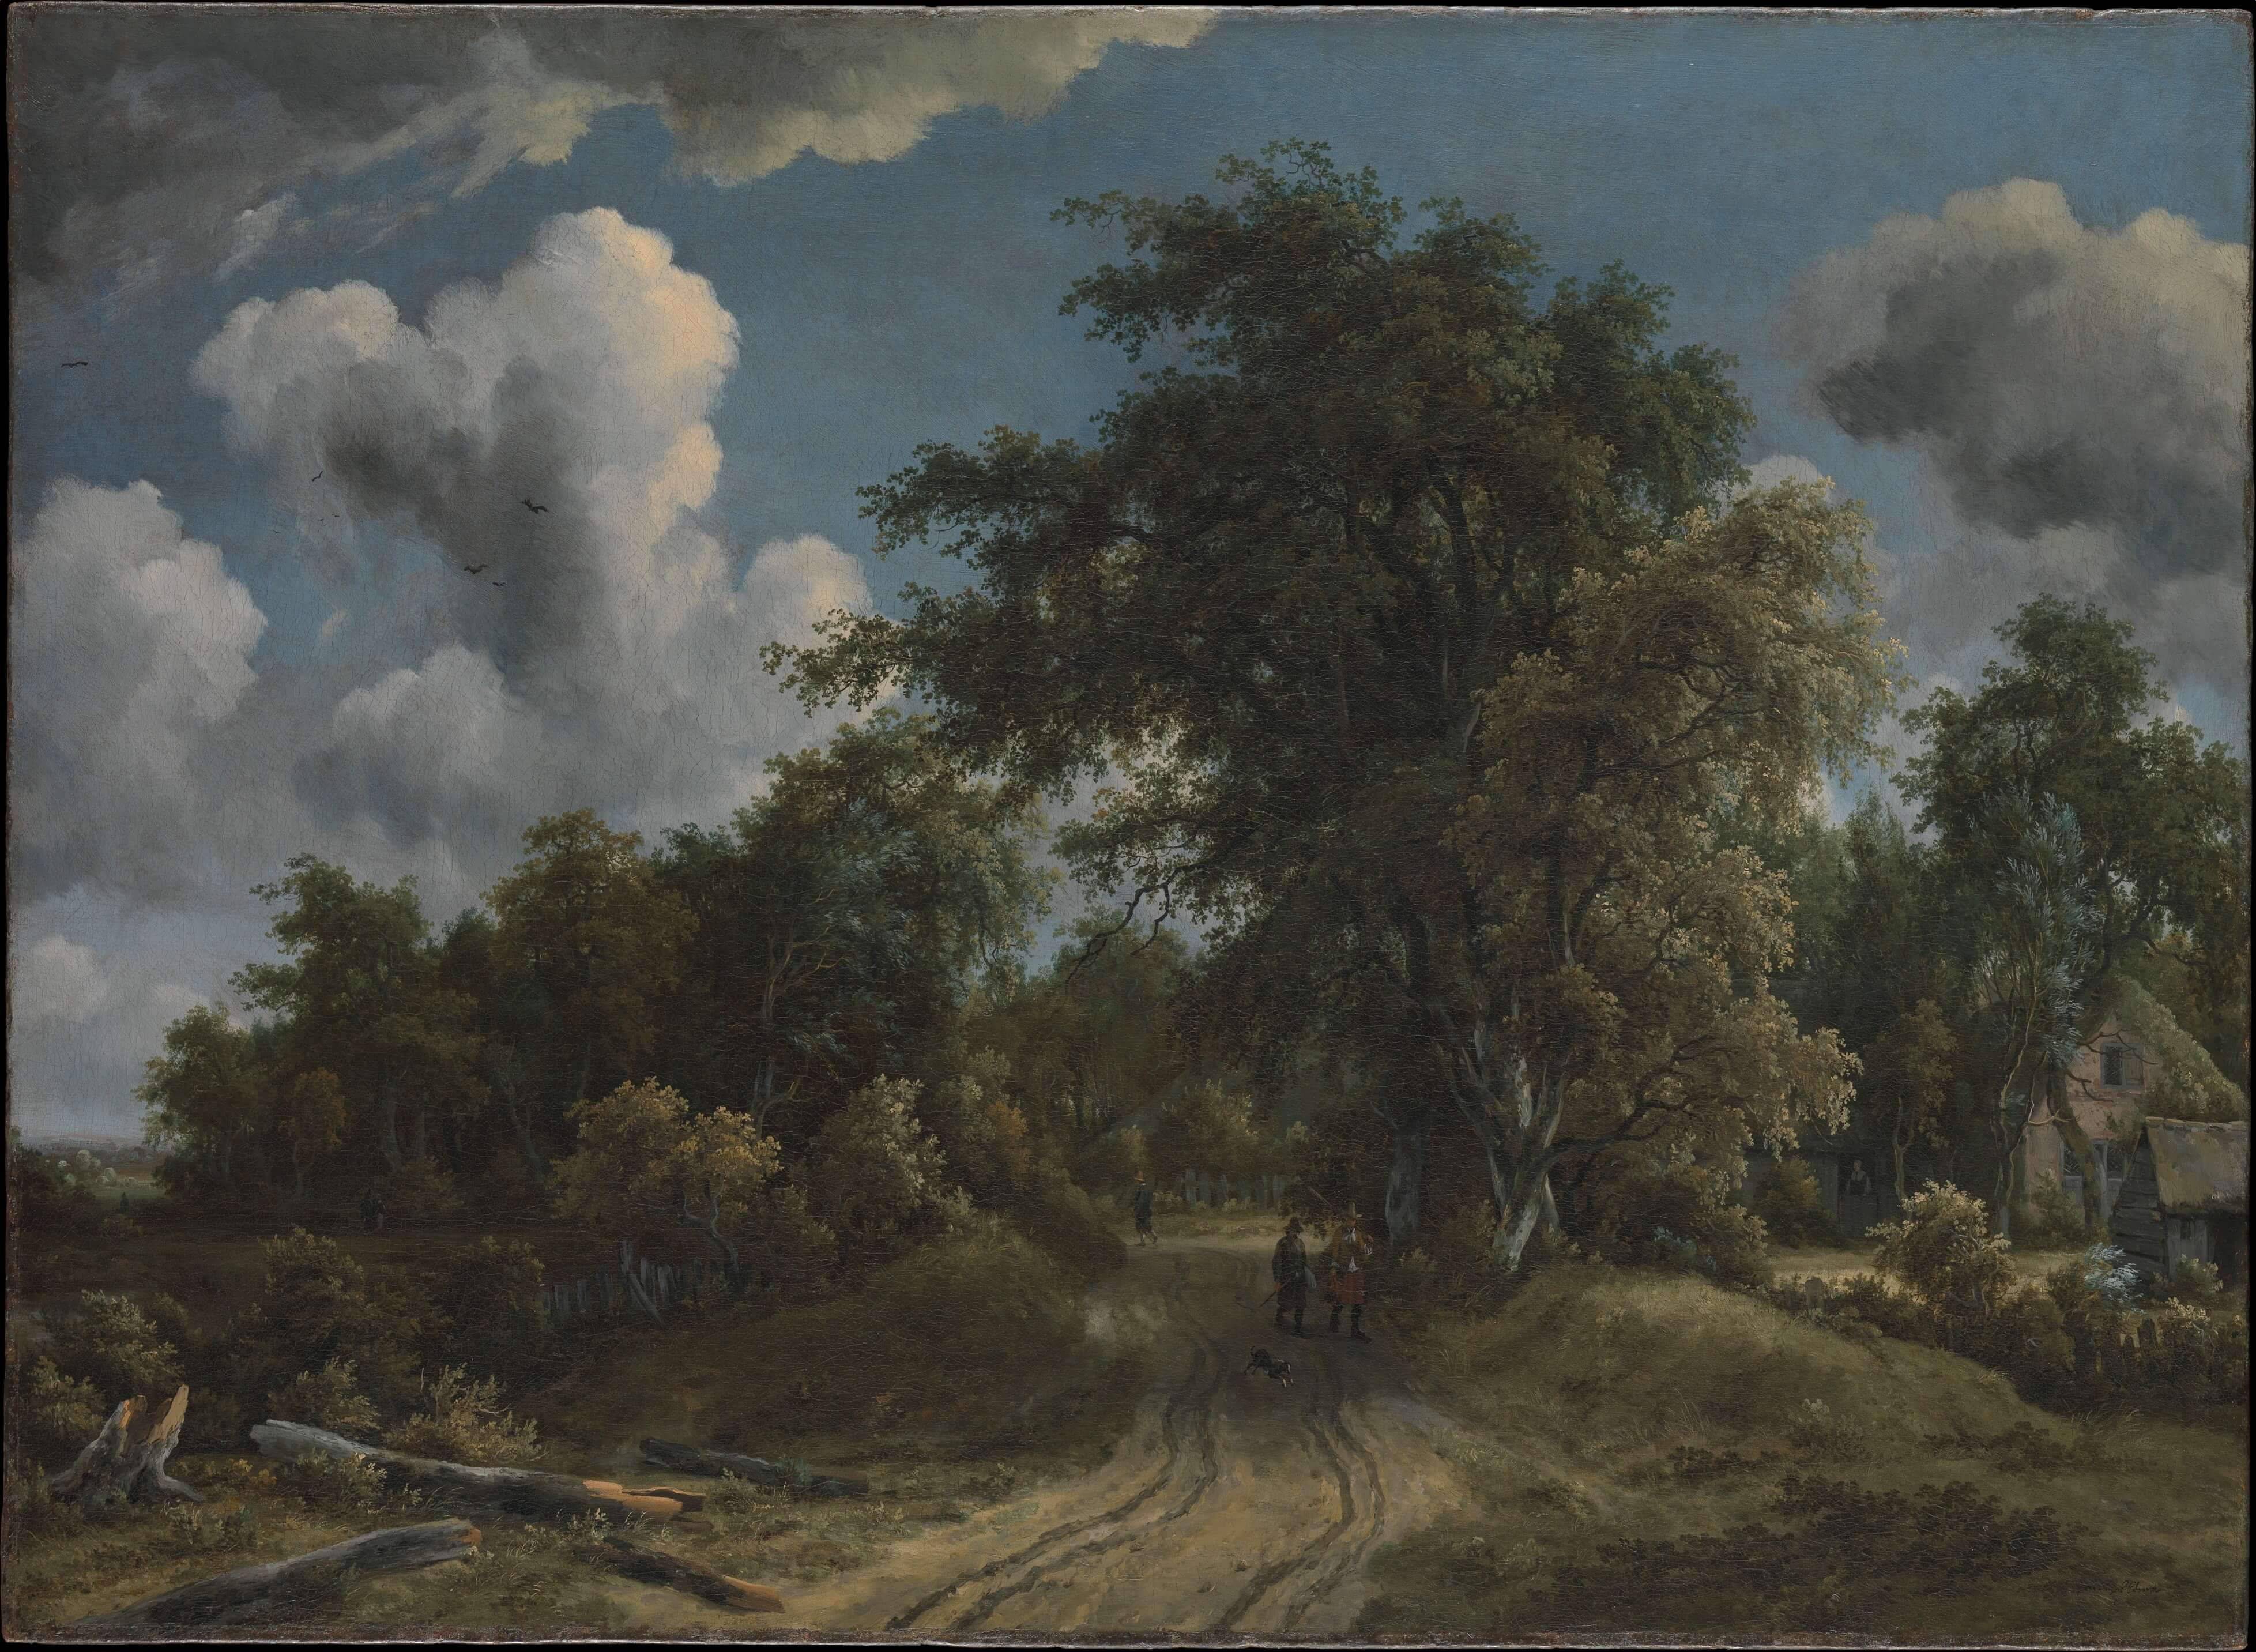 Woodland Road by Meyndert Hobbema Dutch Golden Age